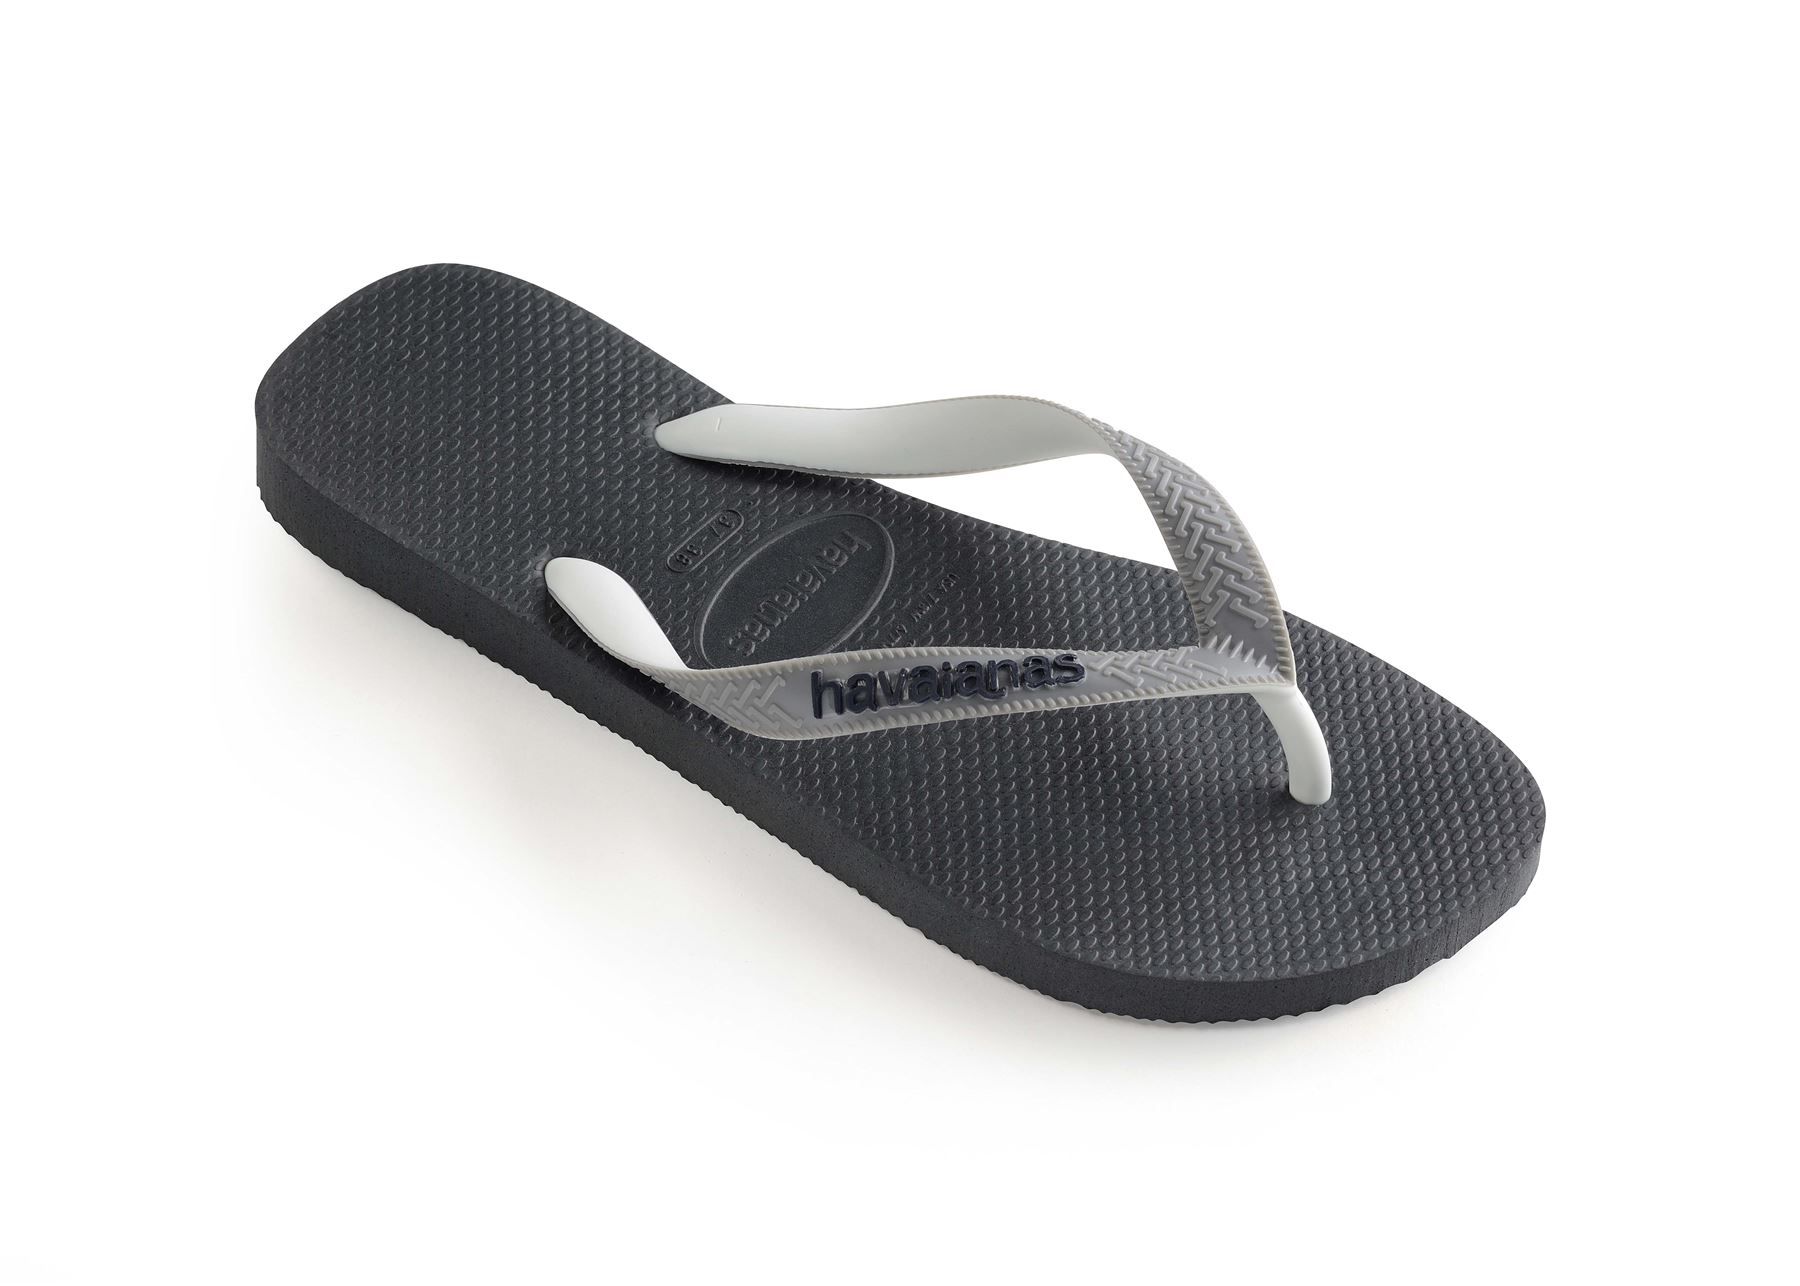 93c5837f2 Havaianas Top Mix Flip Flops Summer Beach Pool Sandals in Grey